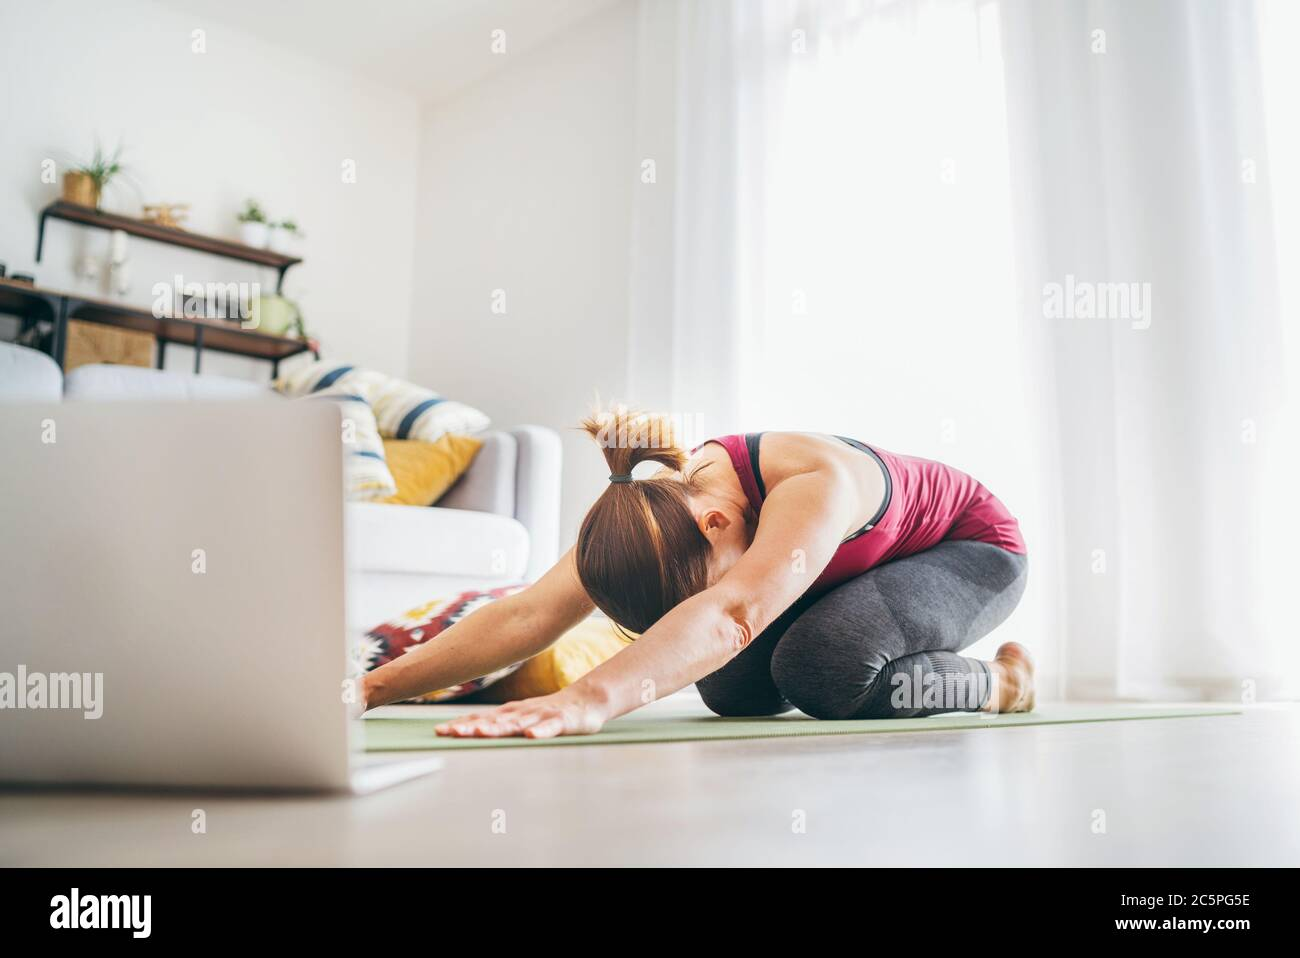 Fit sporty healthy woman on mat in Child's Balasana gentle resting yoga pose, doing breathing exercises, watching online yoga class on laptop computer Stock Photo